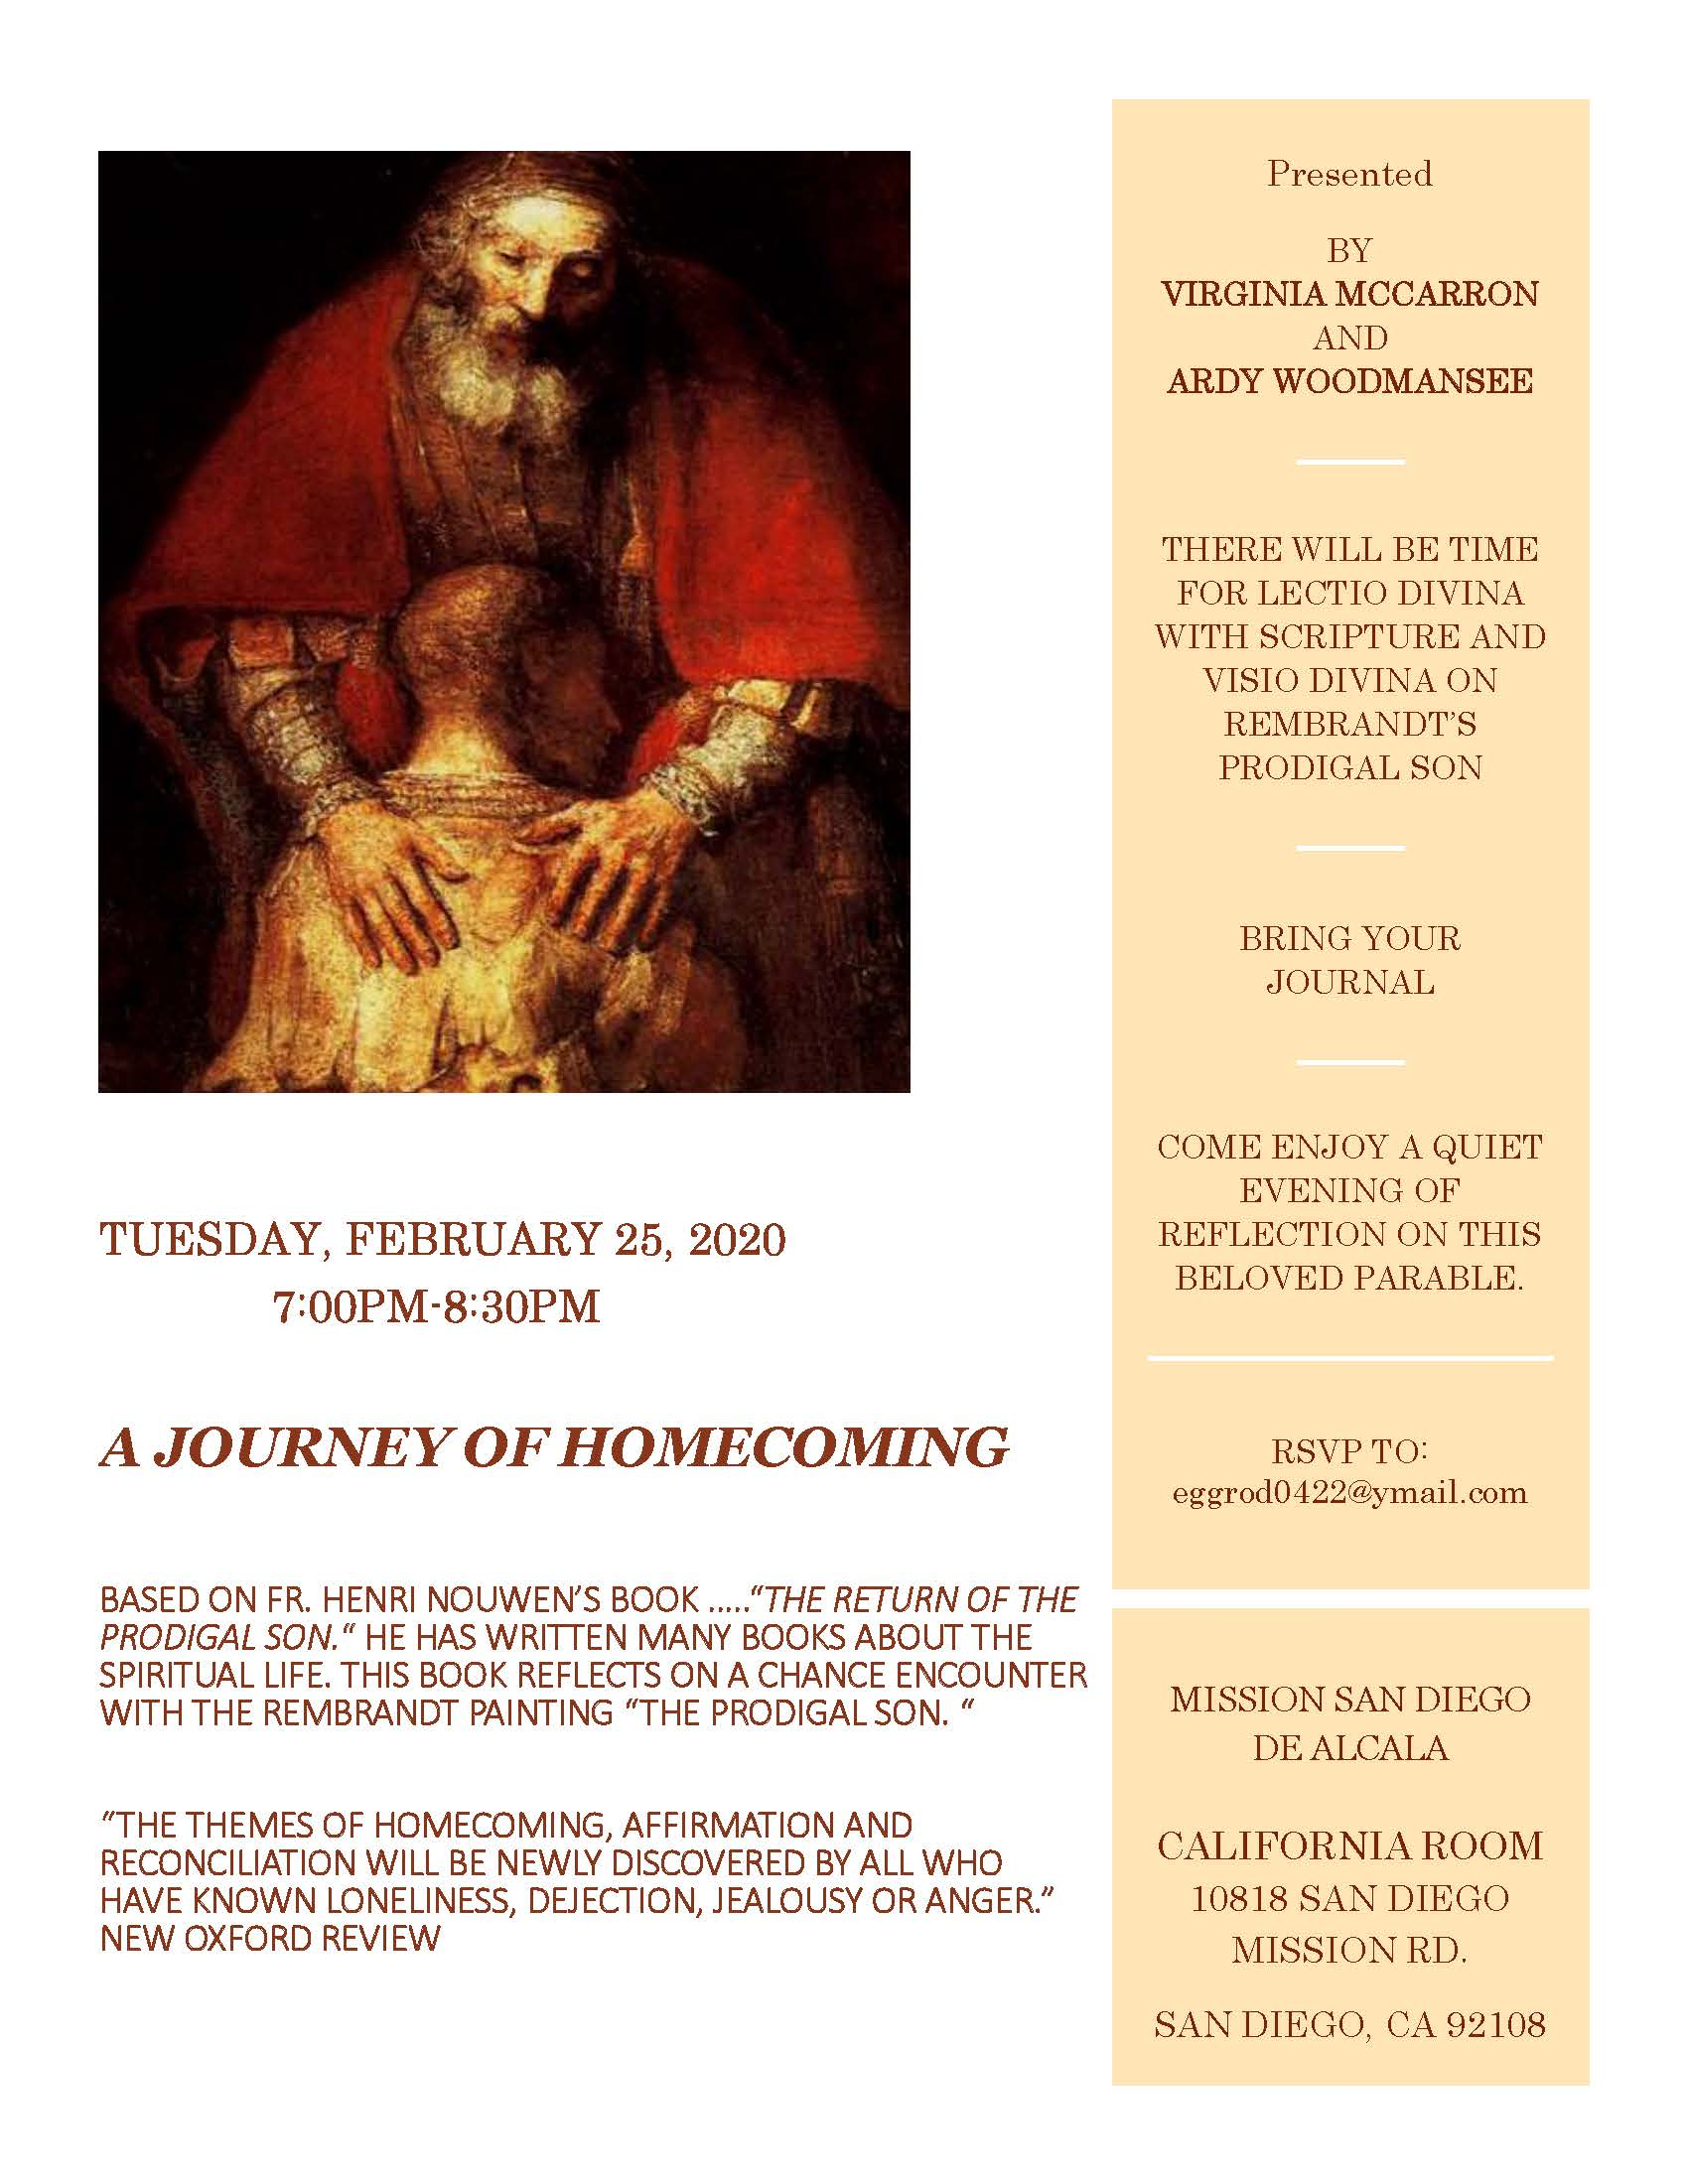 A Journey of Homecoming (Lenten Presentation)